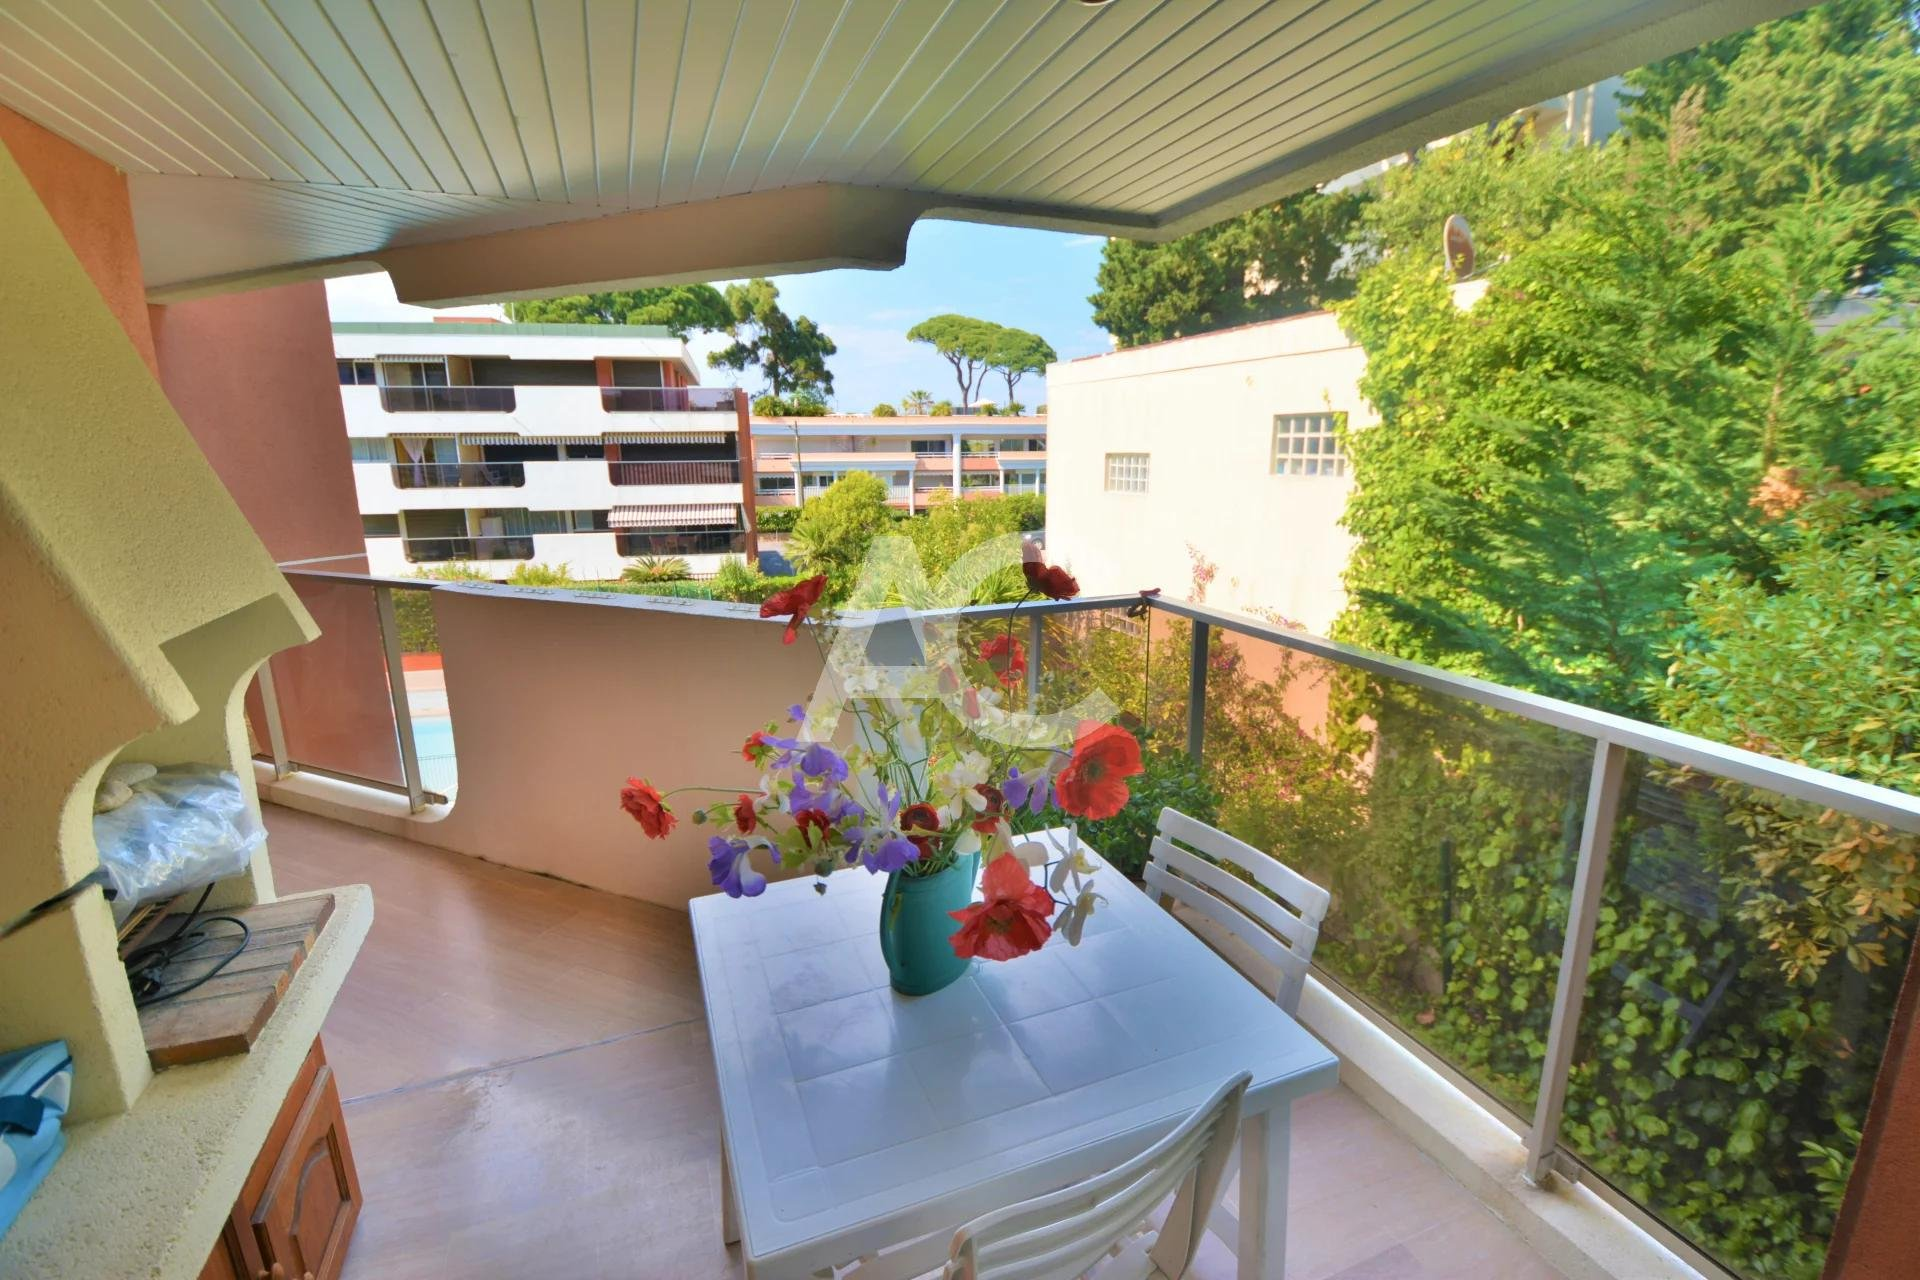 ANTIBES - ILETTE - ONE BEDROOM - PARKING AND CELLAR